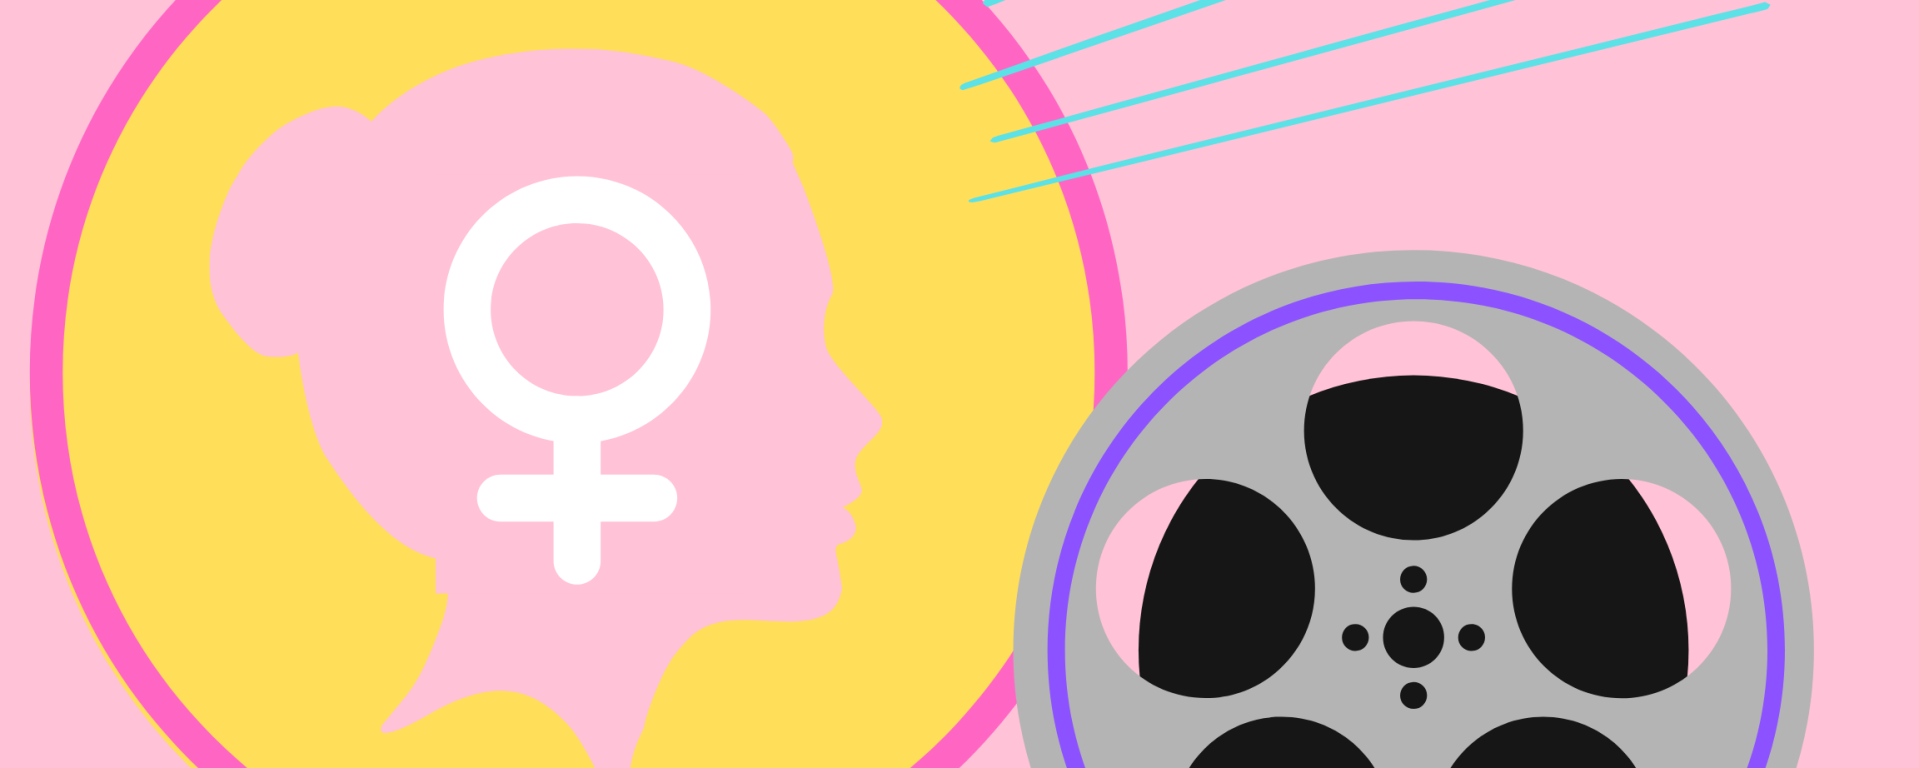 pink background featuring a film reel and a women's head silhouette